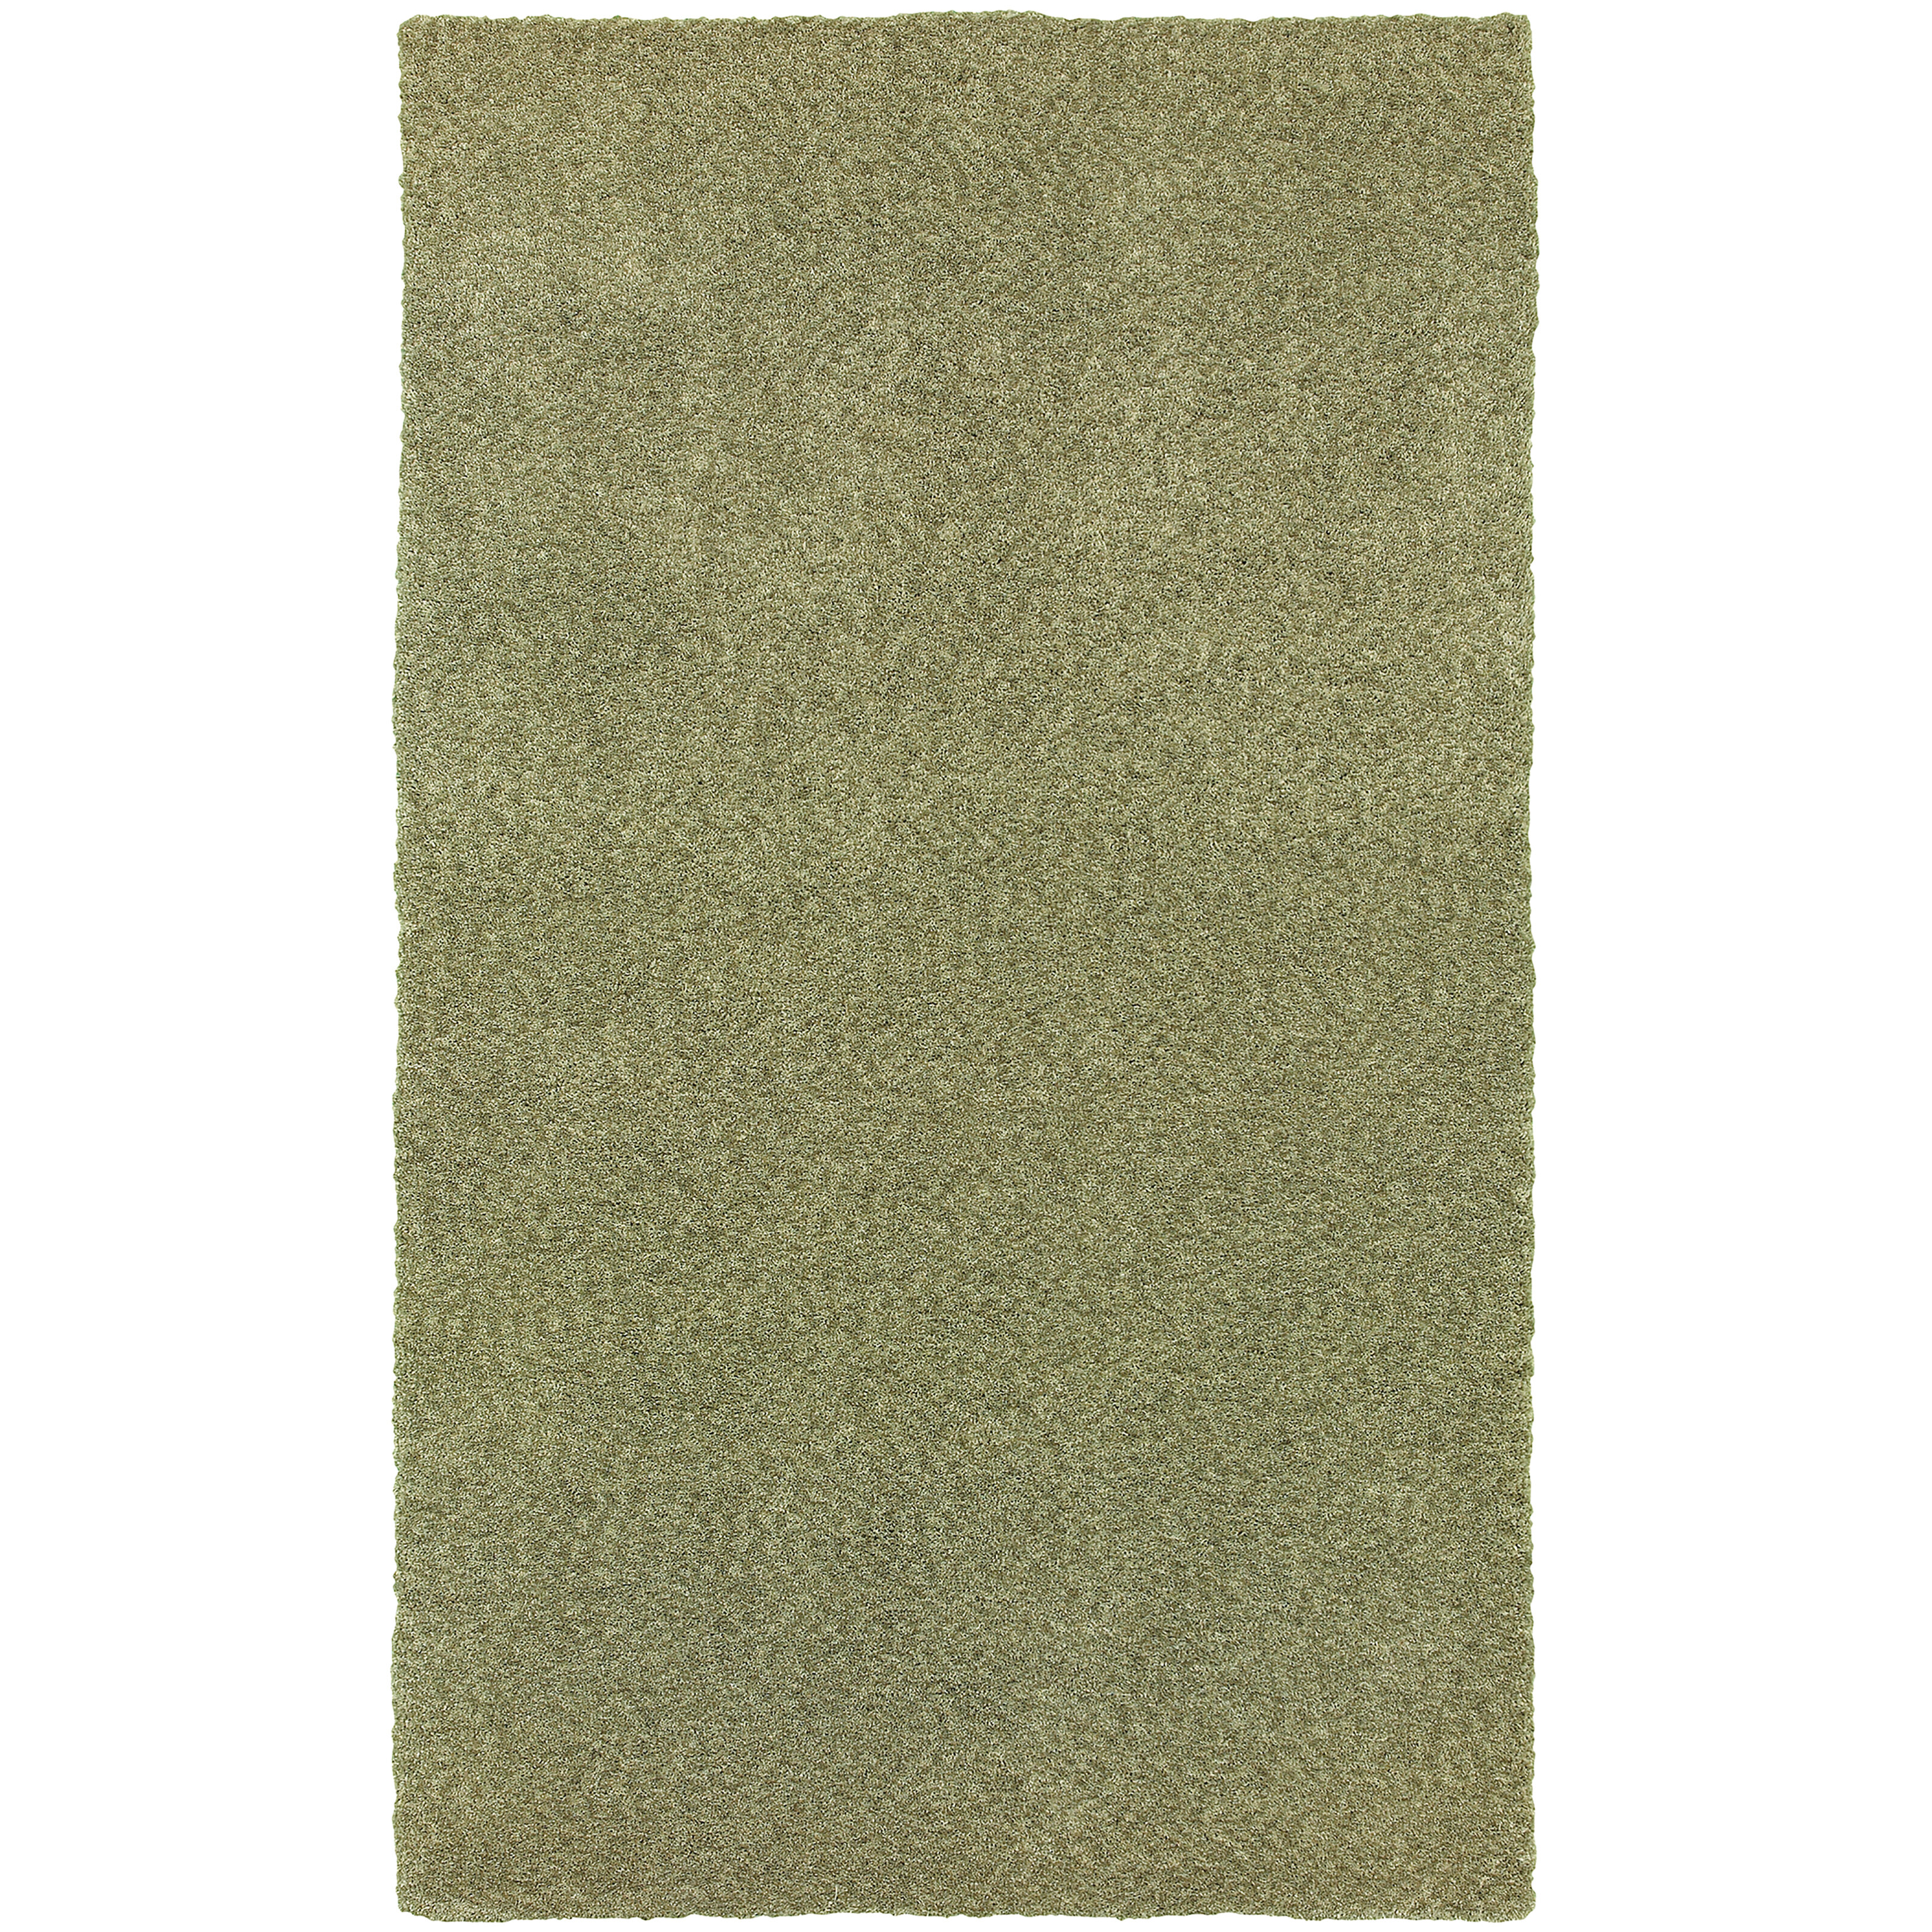 Toronto Handmade Tufted Green Area Rug